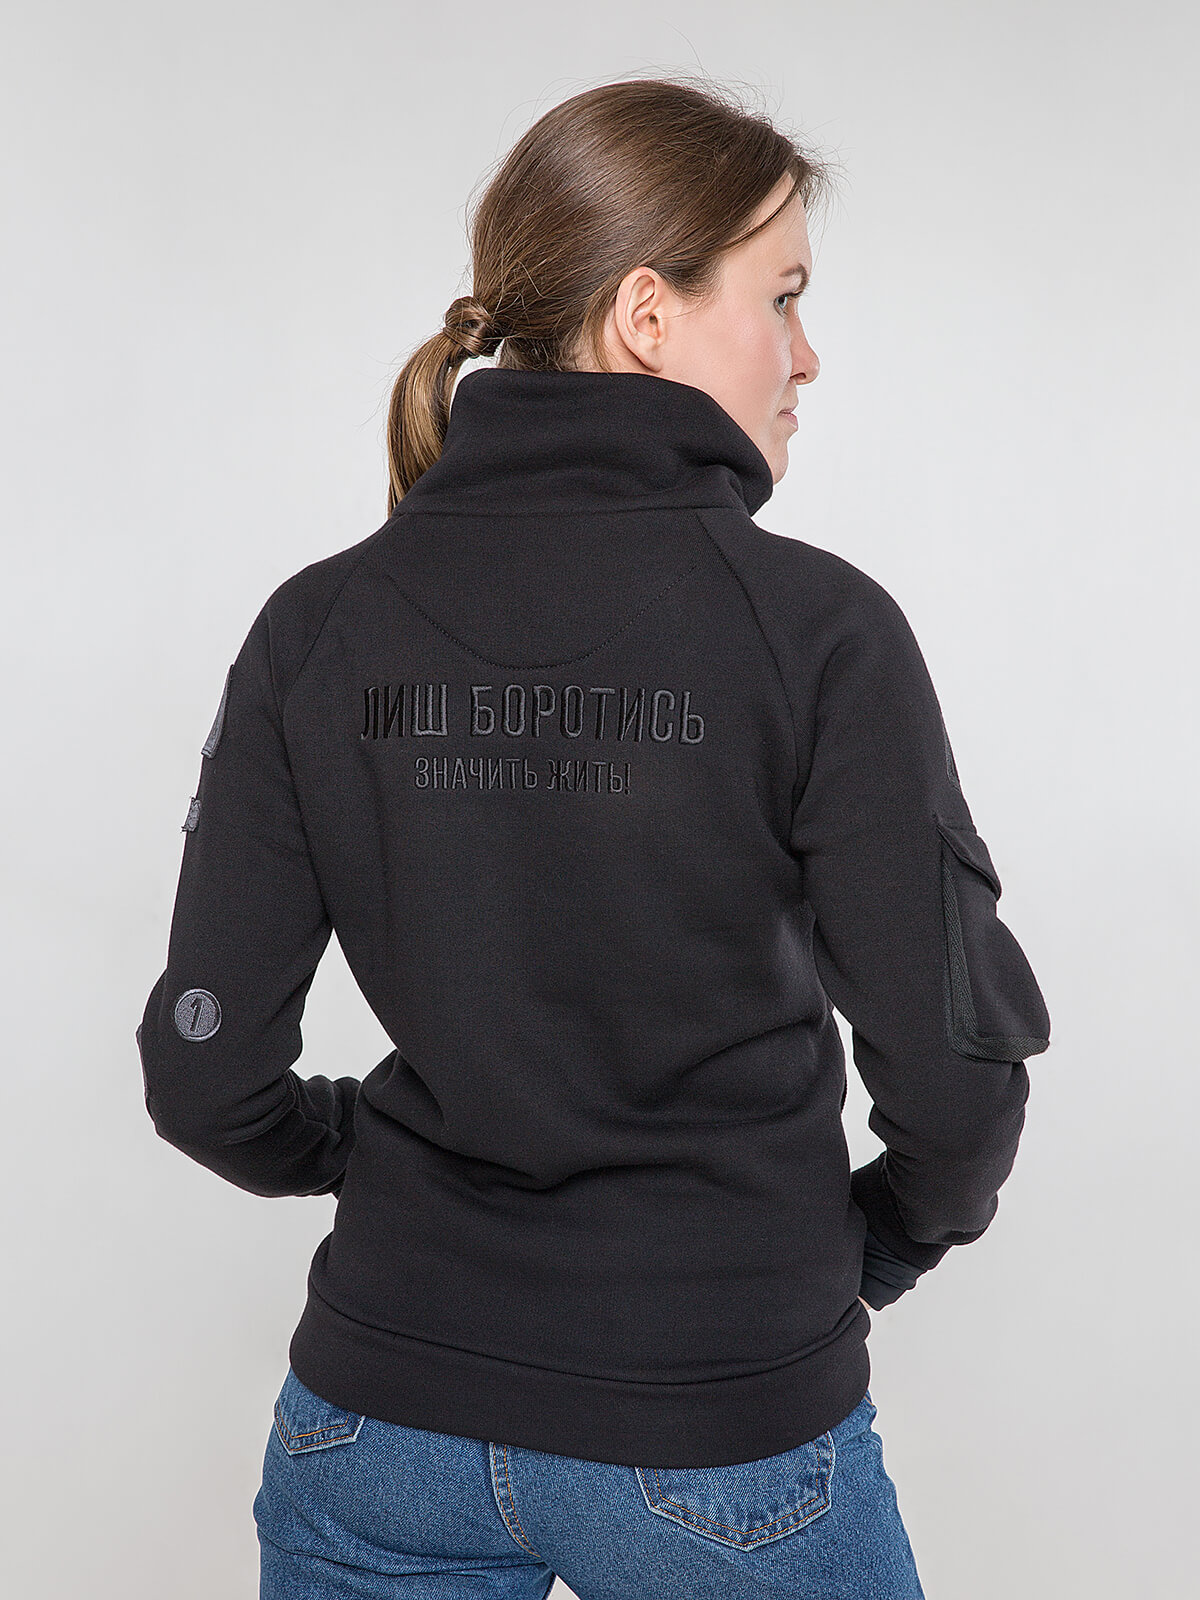 Women's Zippered Cardigan 114 Brigade. Color black.  Don't worry about the universal size.